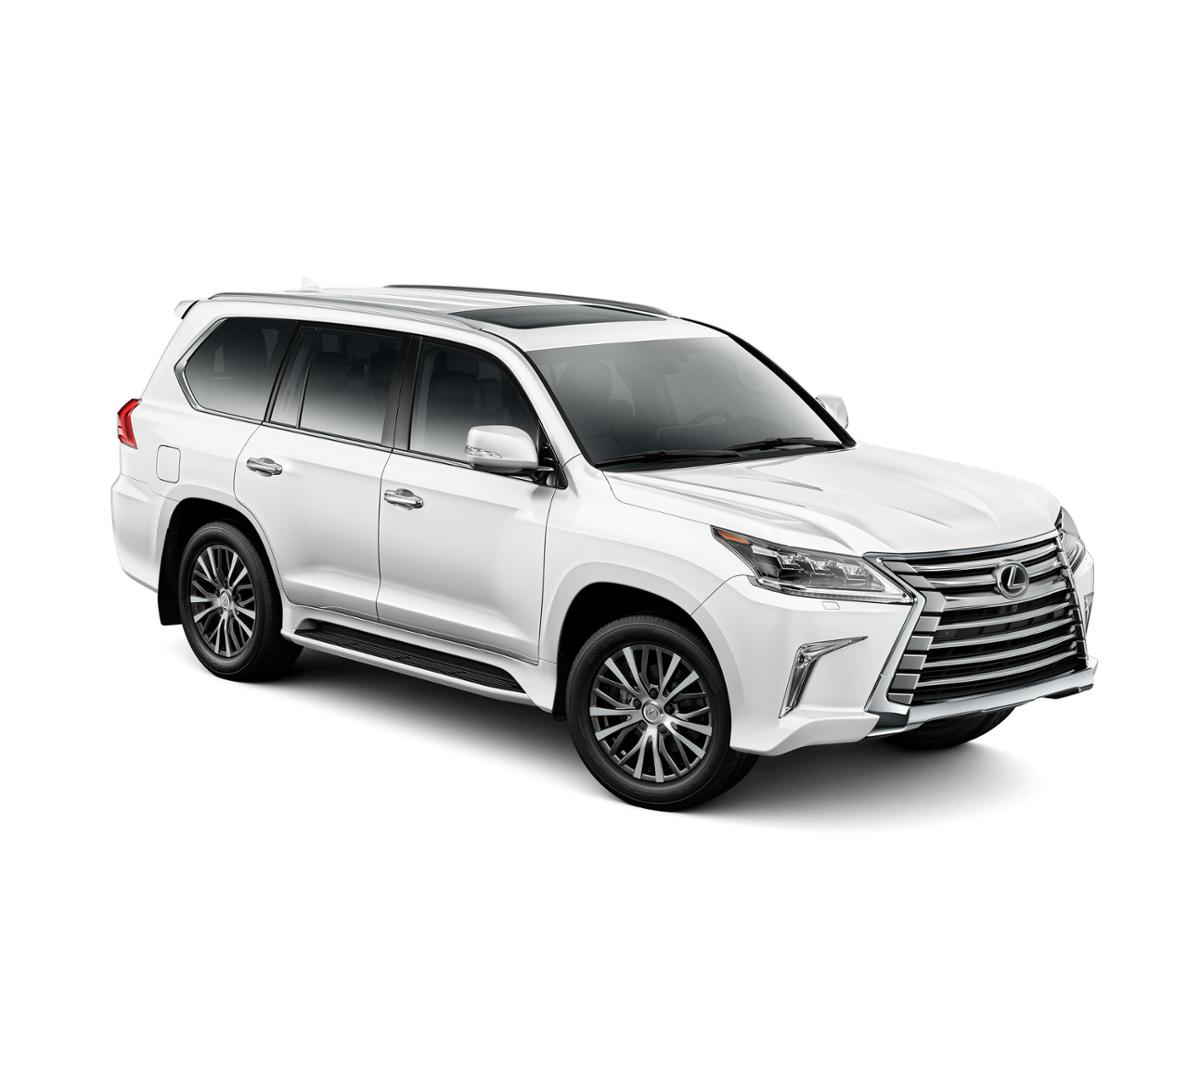 2018 Lexus LX 570 Vehicle Photo in Fort Worth, TX 76132